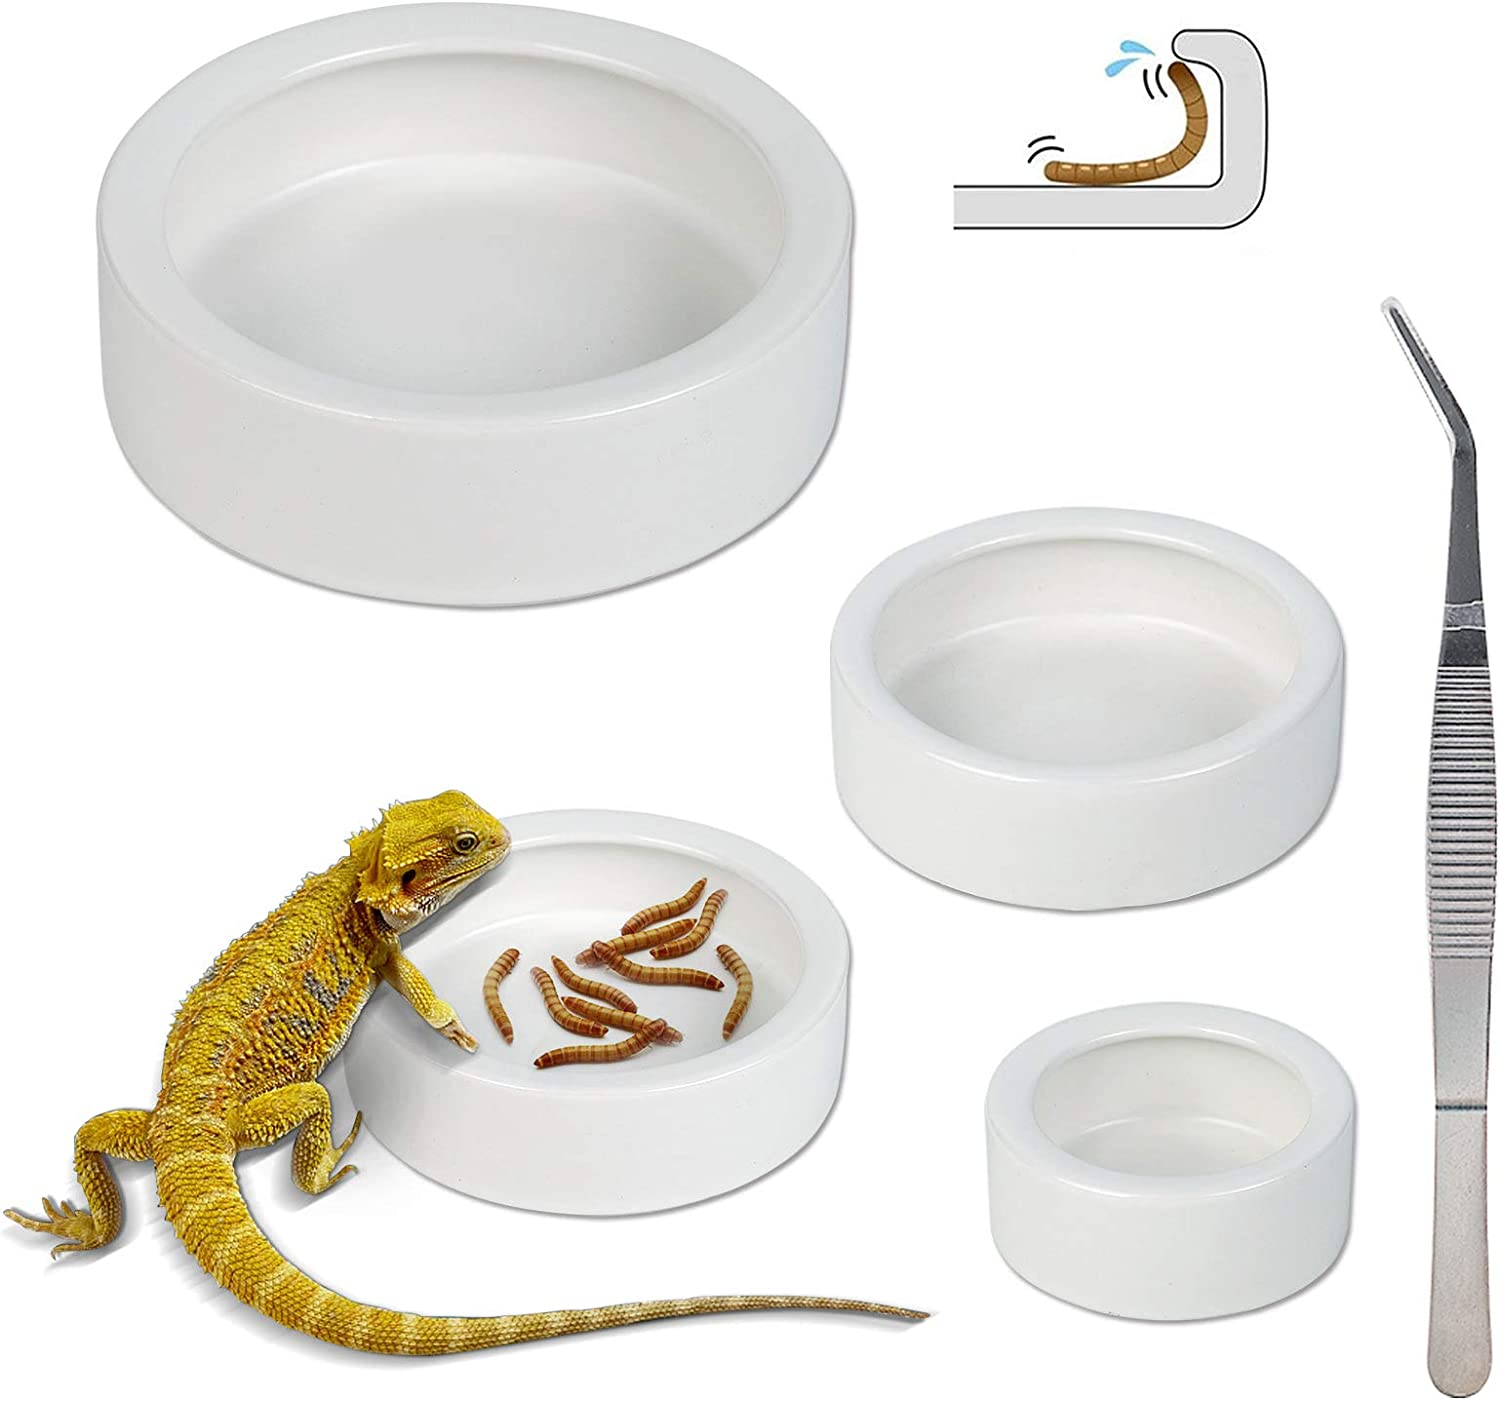 Ceramic Reptile Food and Water Bowl Set of 3,Mini Reptile Feeding Dish,Worm Dish for Lizard Anoles Bearded Dragons(with Tweezer)